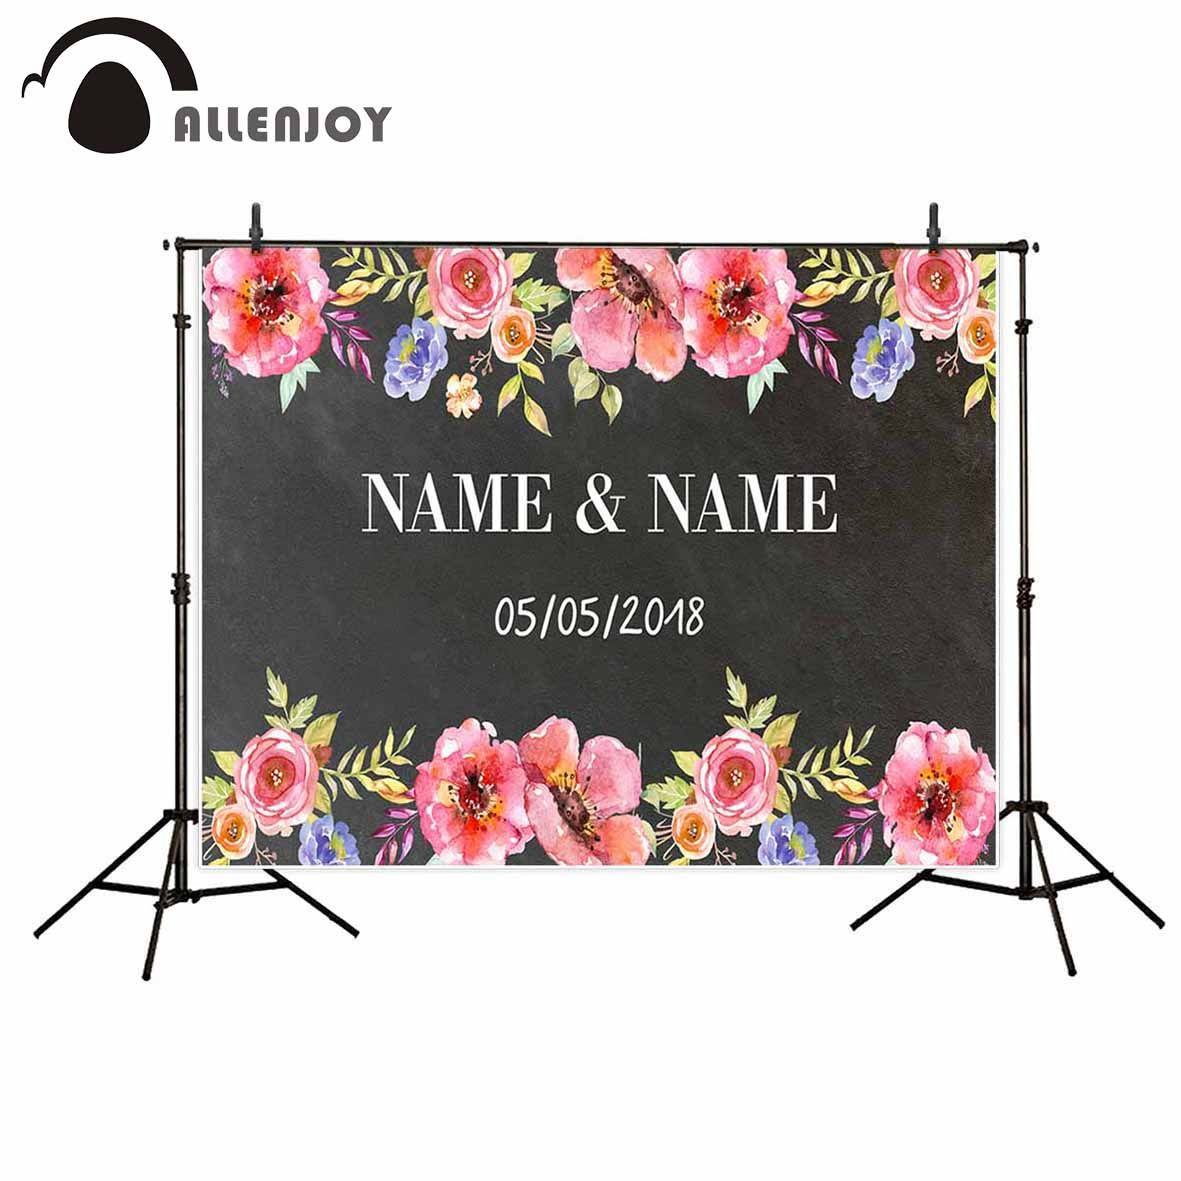 Allenjoy photography backdrop flower custom wedding chalkboard background photocall photo studio for a photo shoot professional